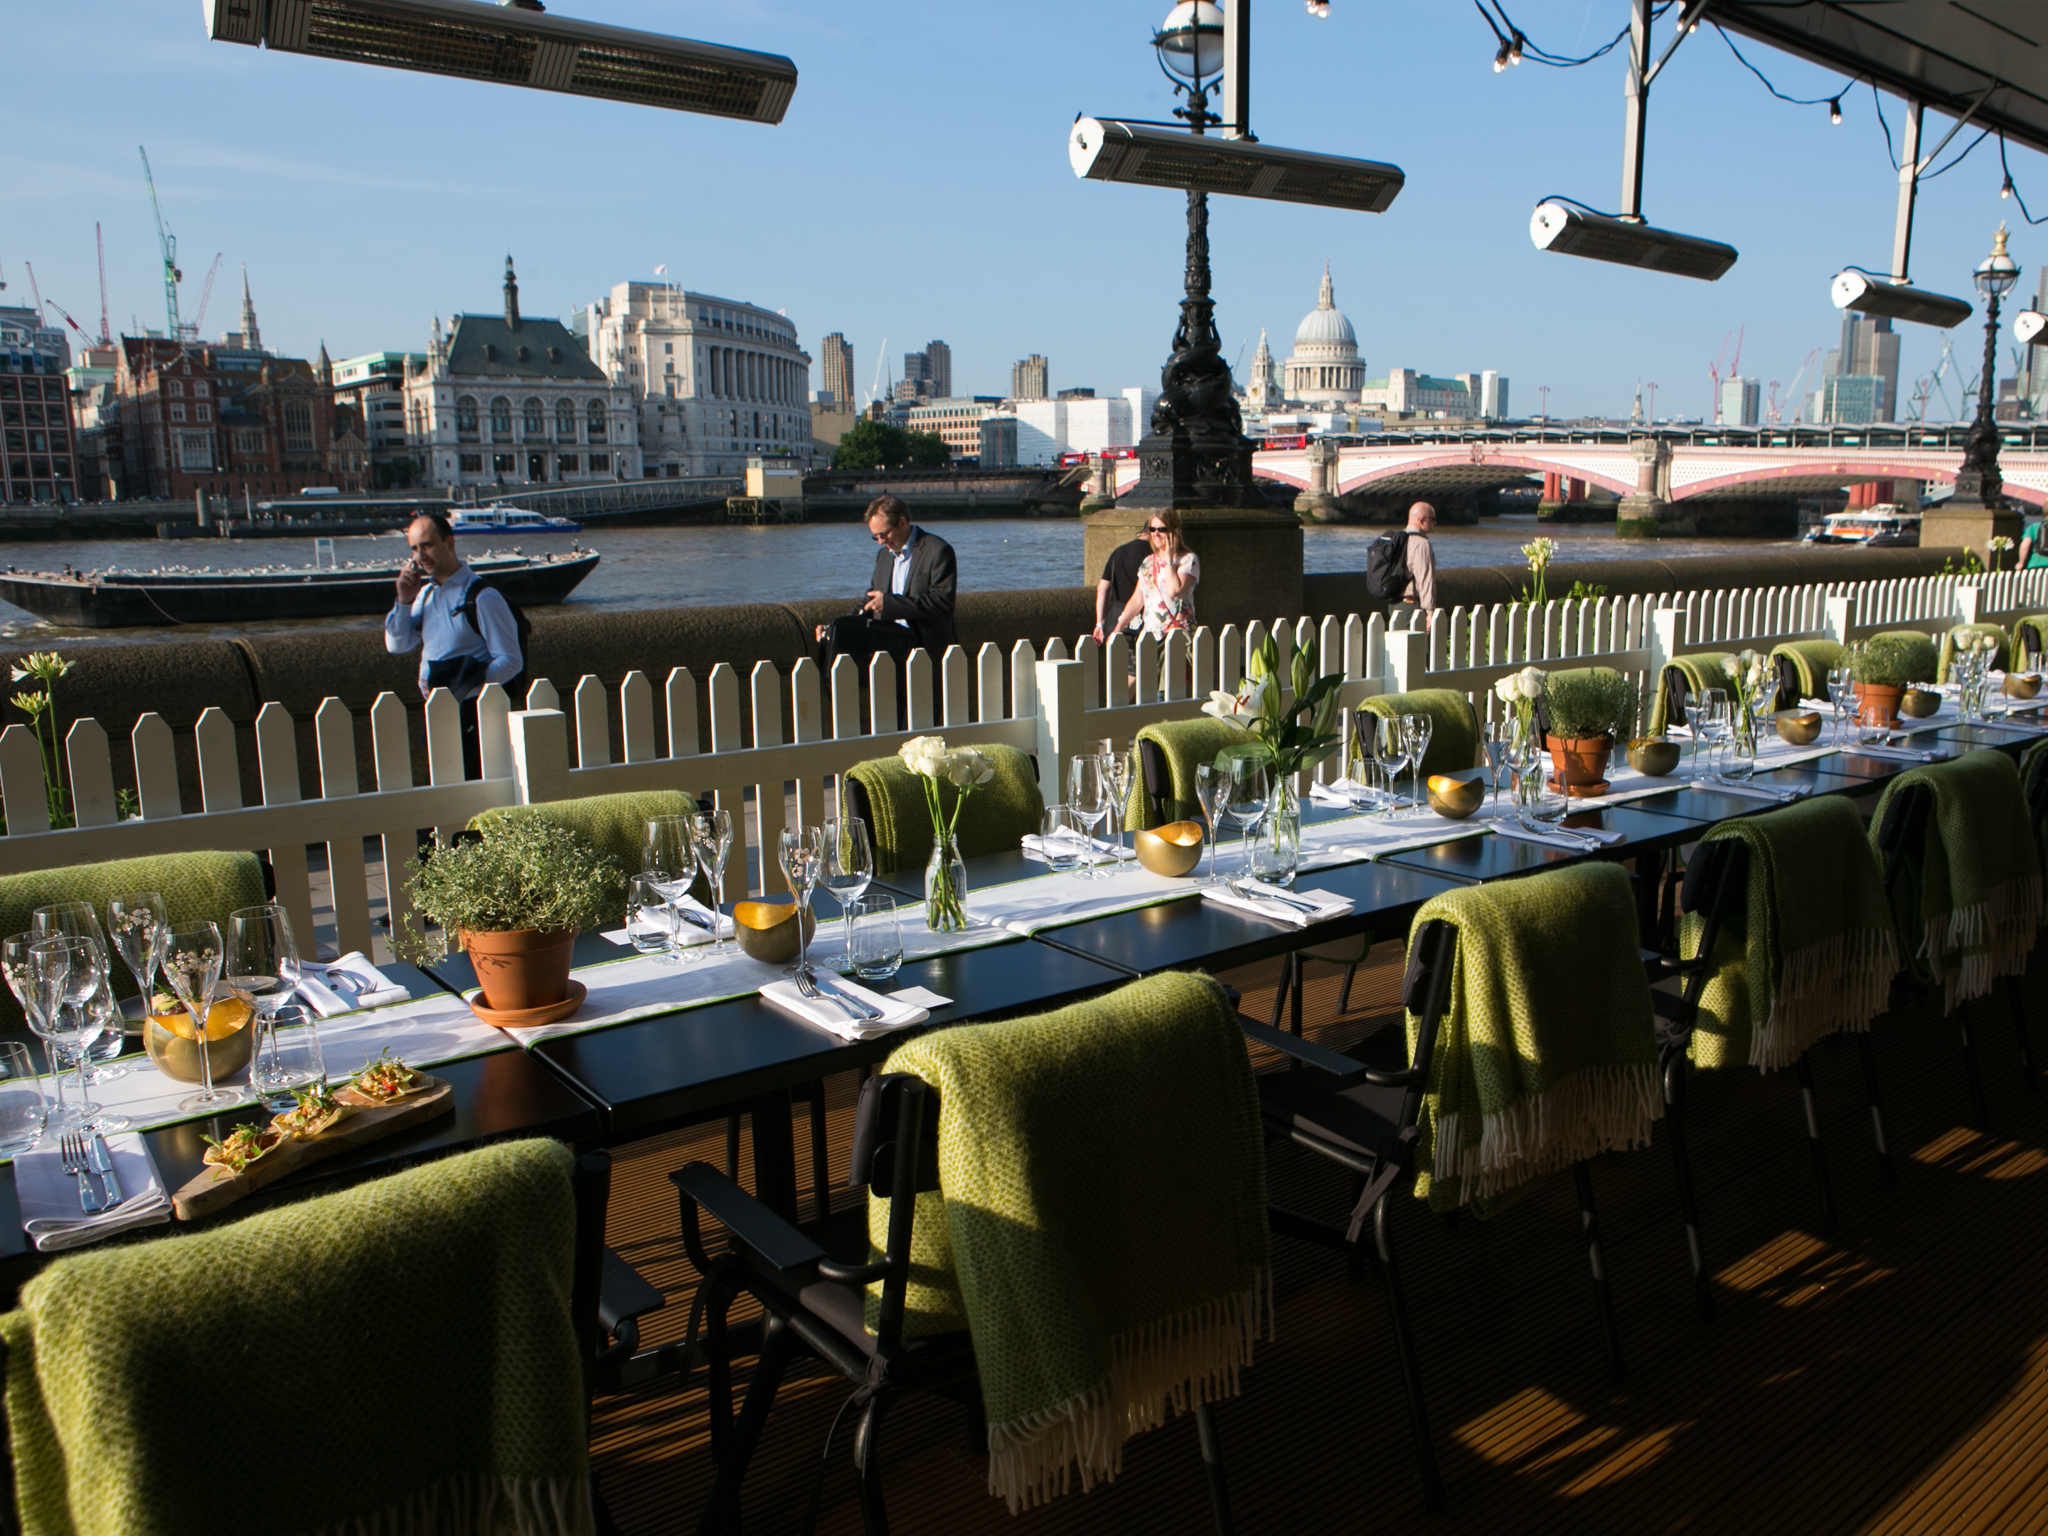 Riverside restaurants in London